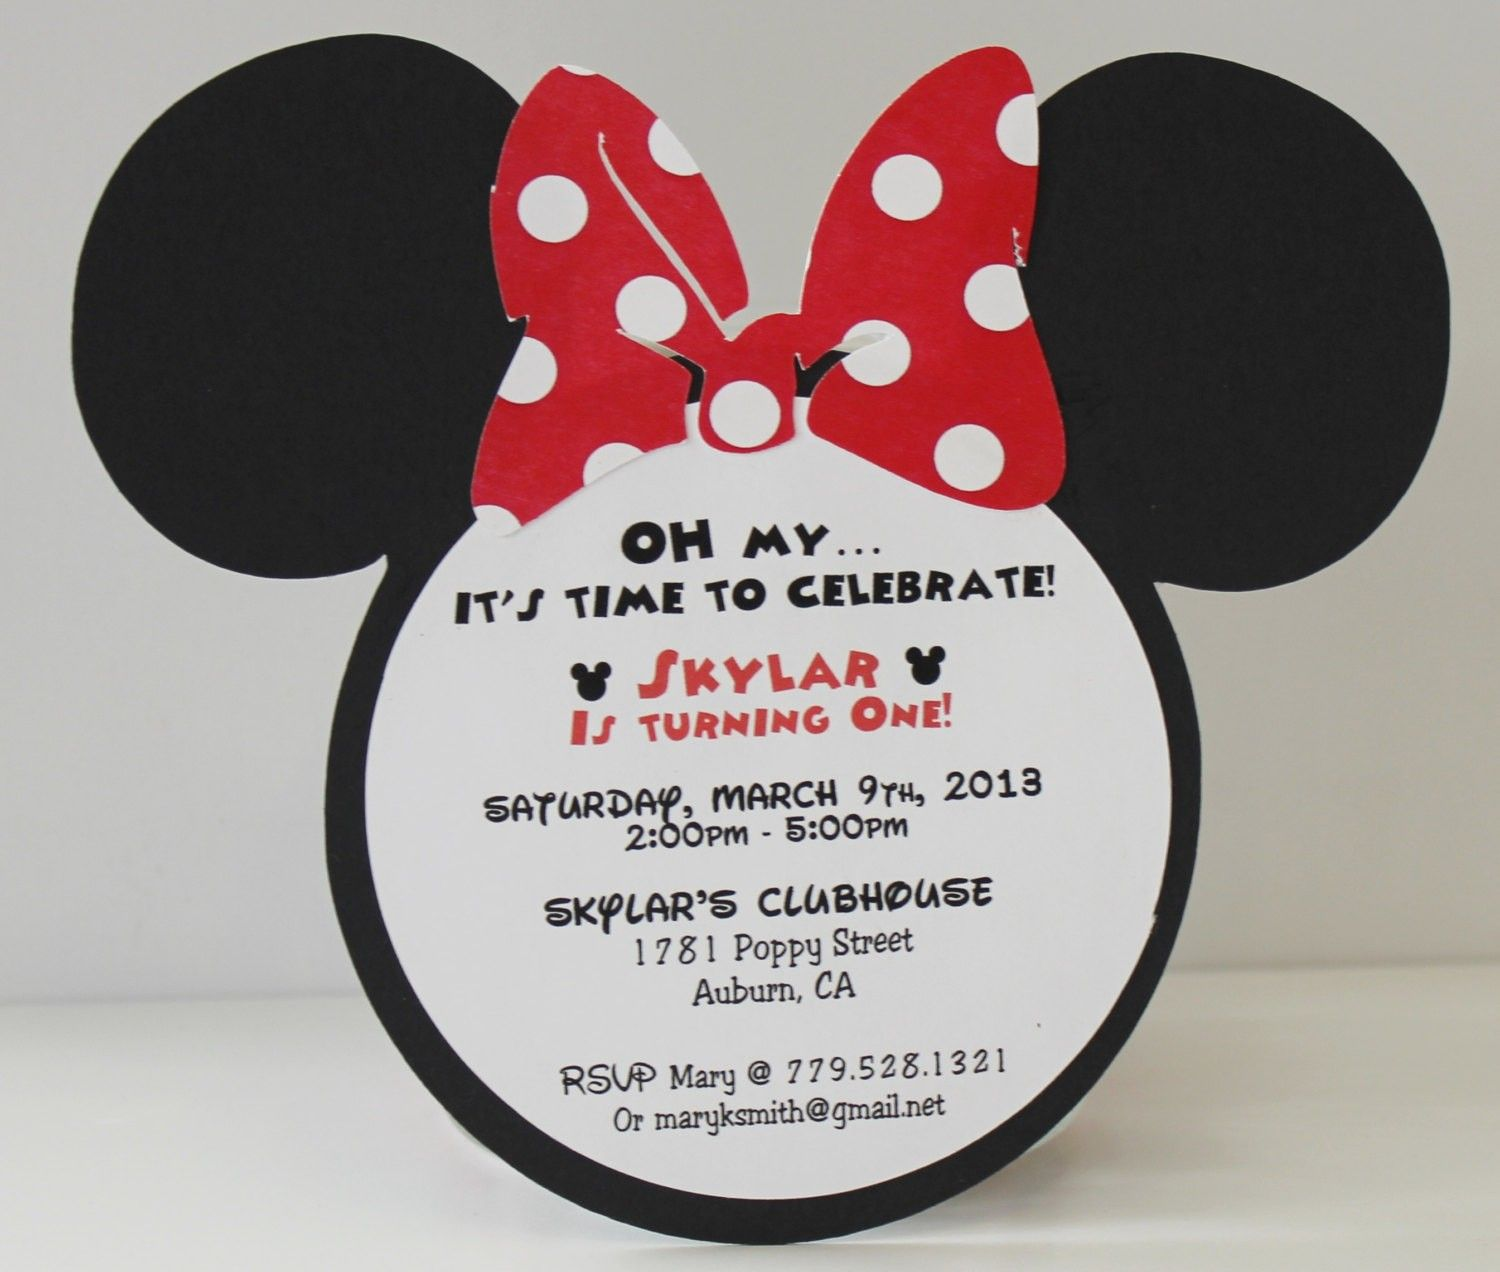 Minnie mouse birthday invitation wording for kids birthday minnie mouse birthday invitation wording for kids filmwisefo